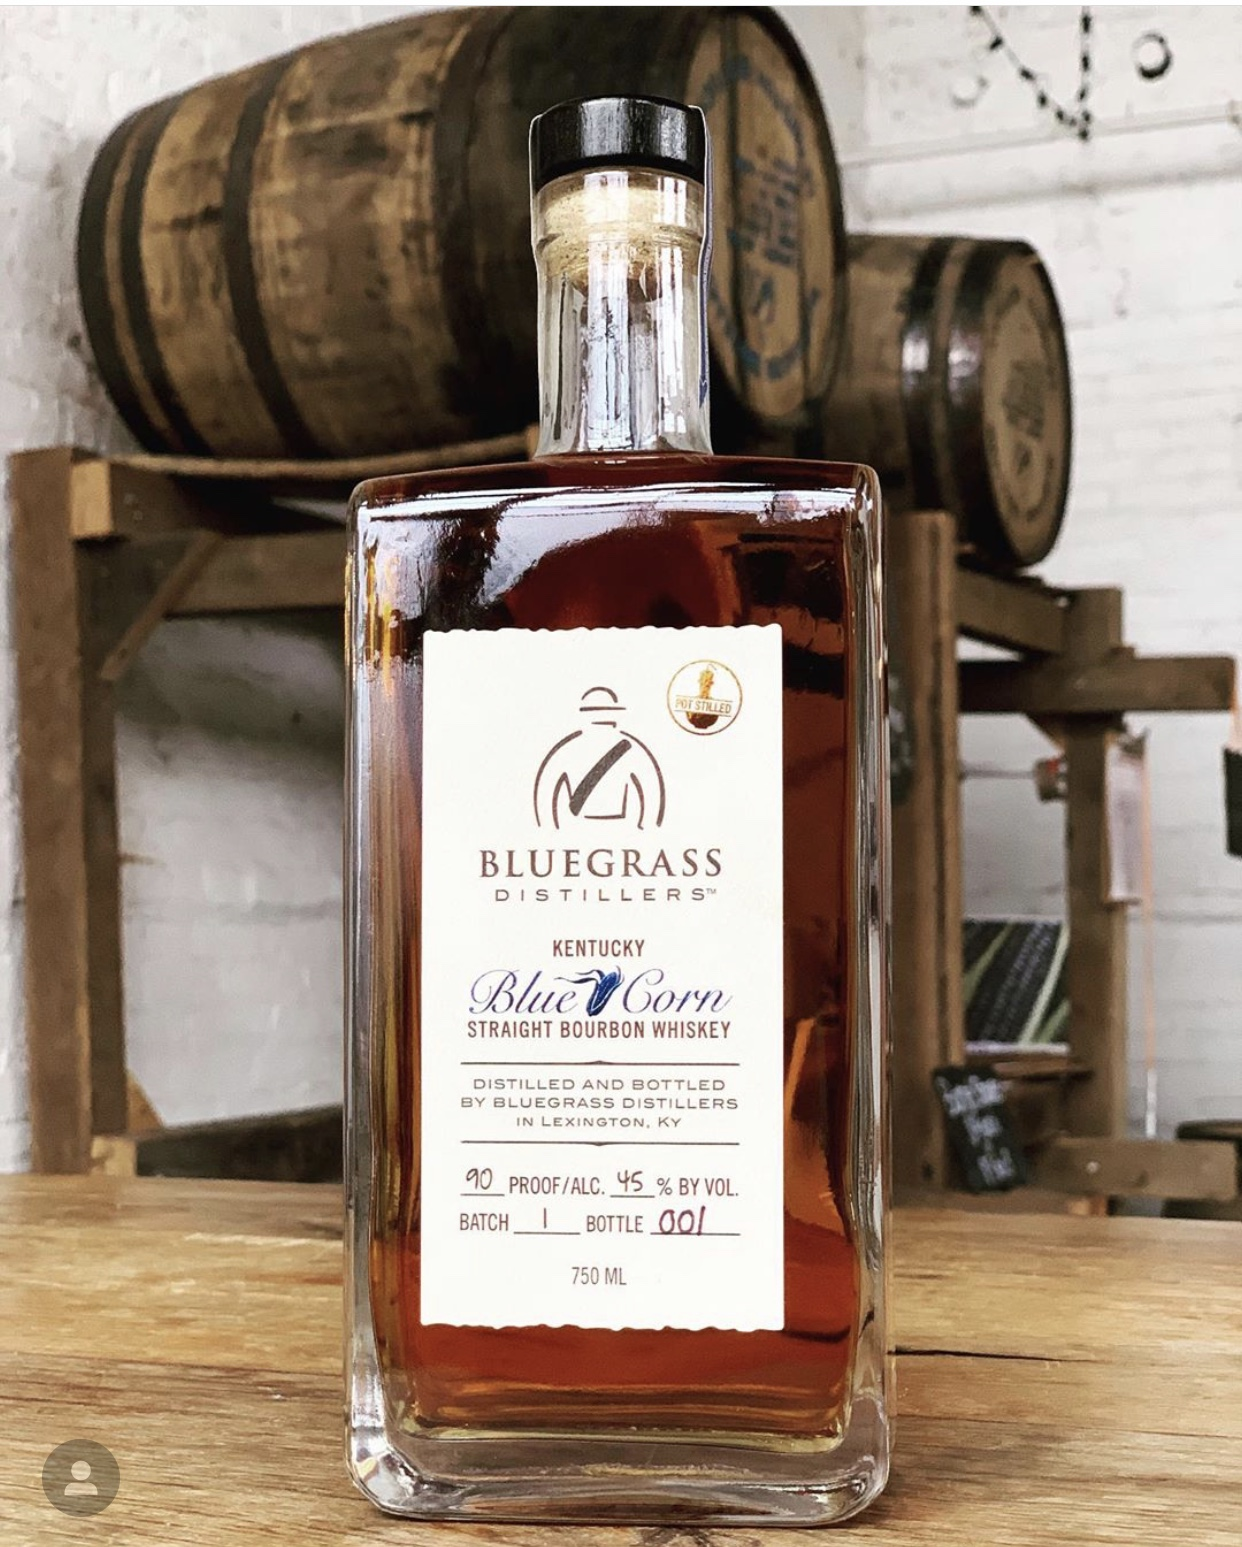 KY STRAIGHT BLUE CORN BOURBON - Made of 75% blue corn, 21% wheat, and 4% malted barley. Unlike any other bourbon, the blue corn yields an earthy, nutty, and mildly vanilla flavor. We are looking to release our first KY Straight Blue Corn Bourbon March 30th, 2019.We still have bottles available as of May 11th 2019.